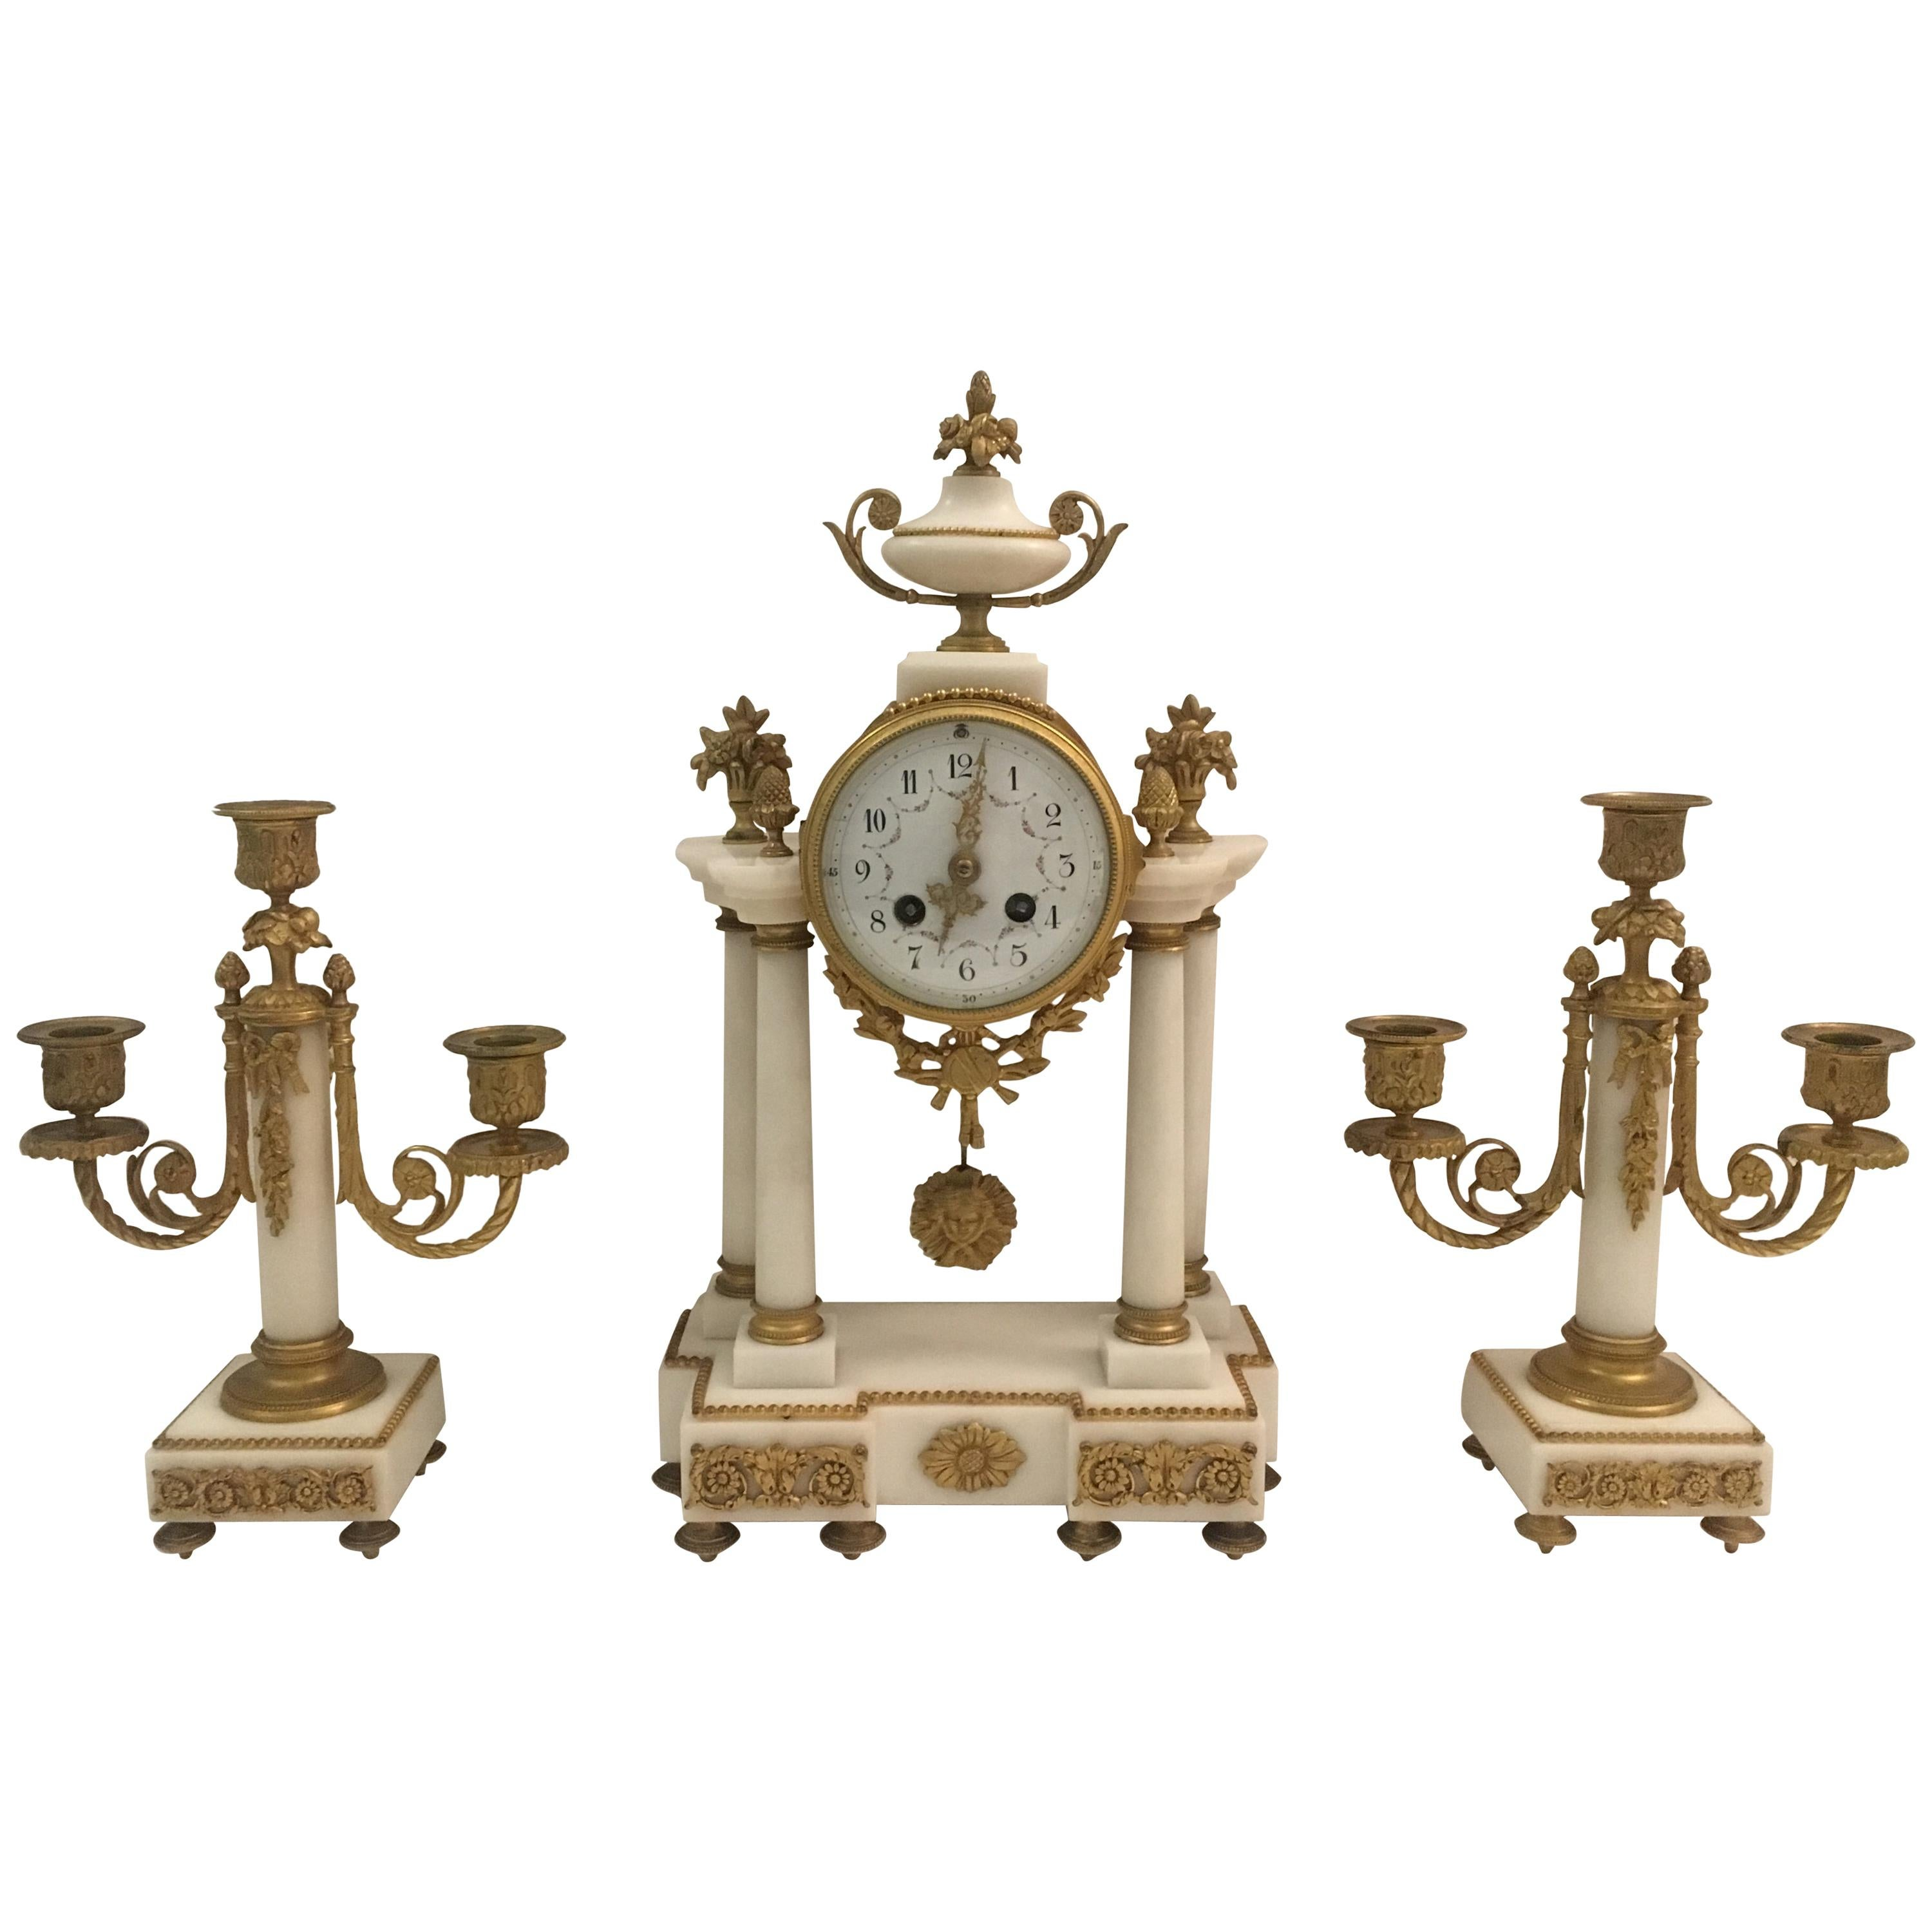 19th C. French Louis XVI Marble and Gilded Bronze Mantel Clock and Garniture Set